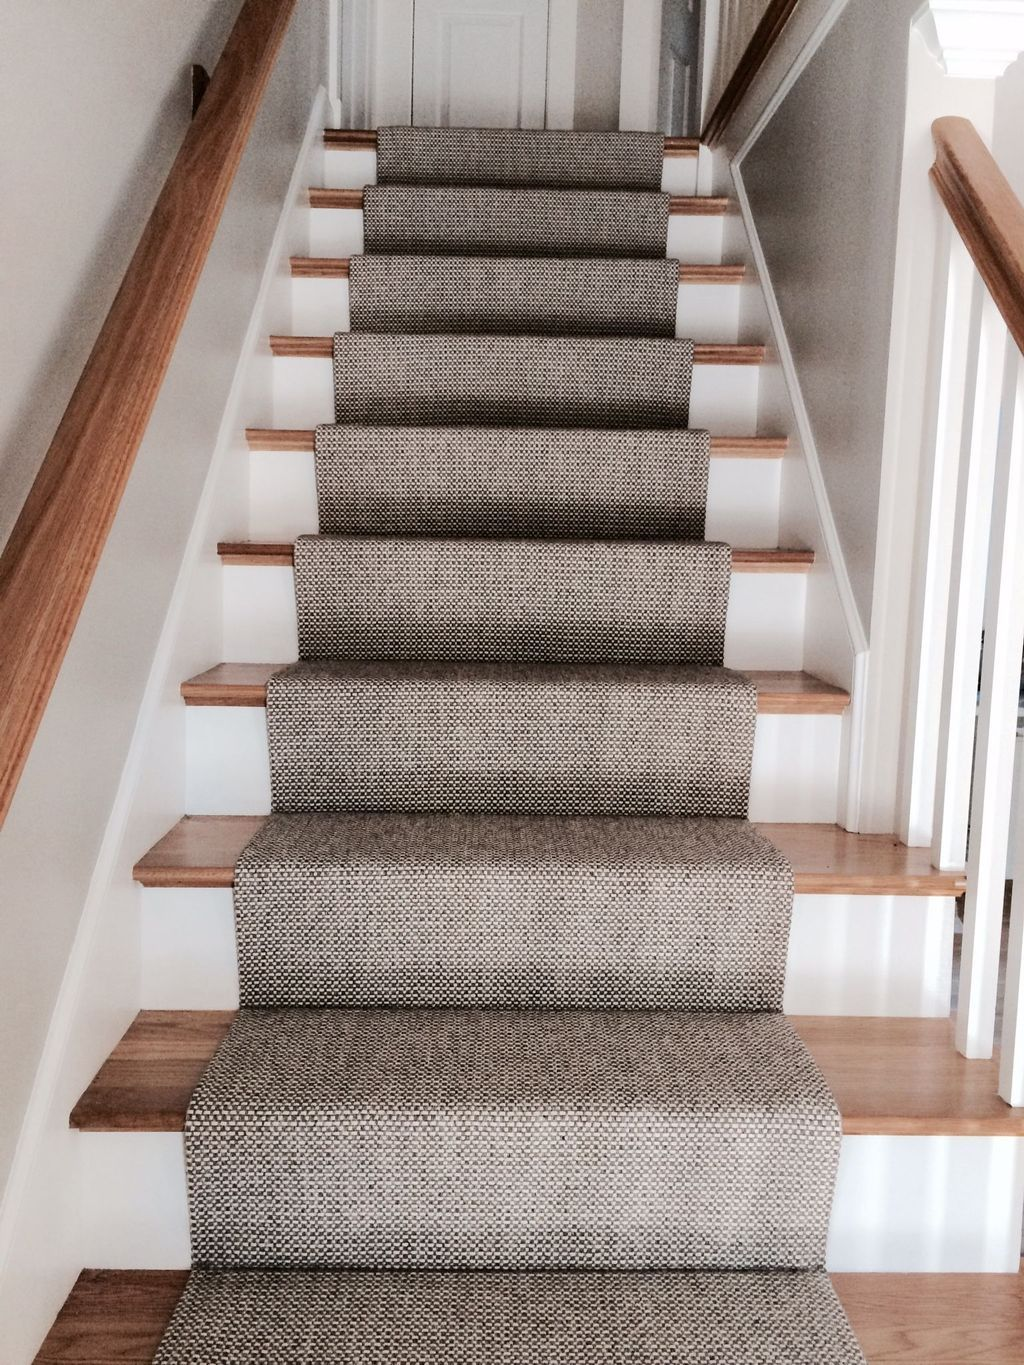 Best 45 Stair Runner Patterns And Designs Staircase Carpet 400 x 300